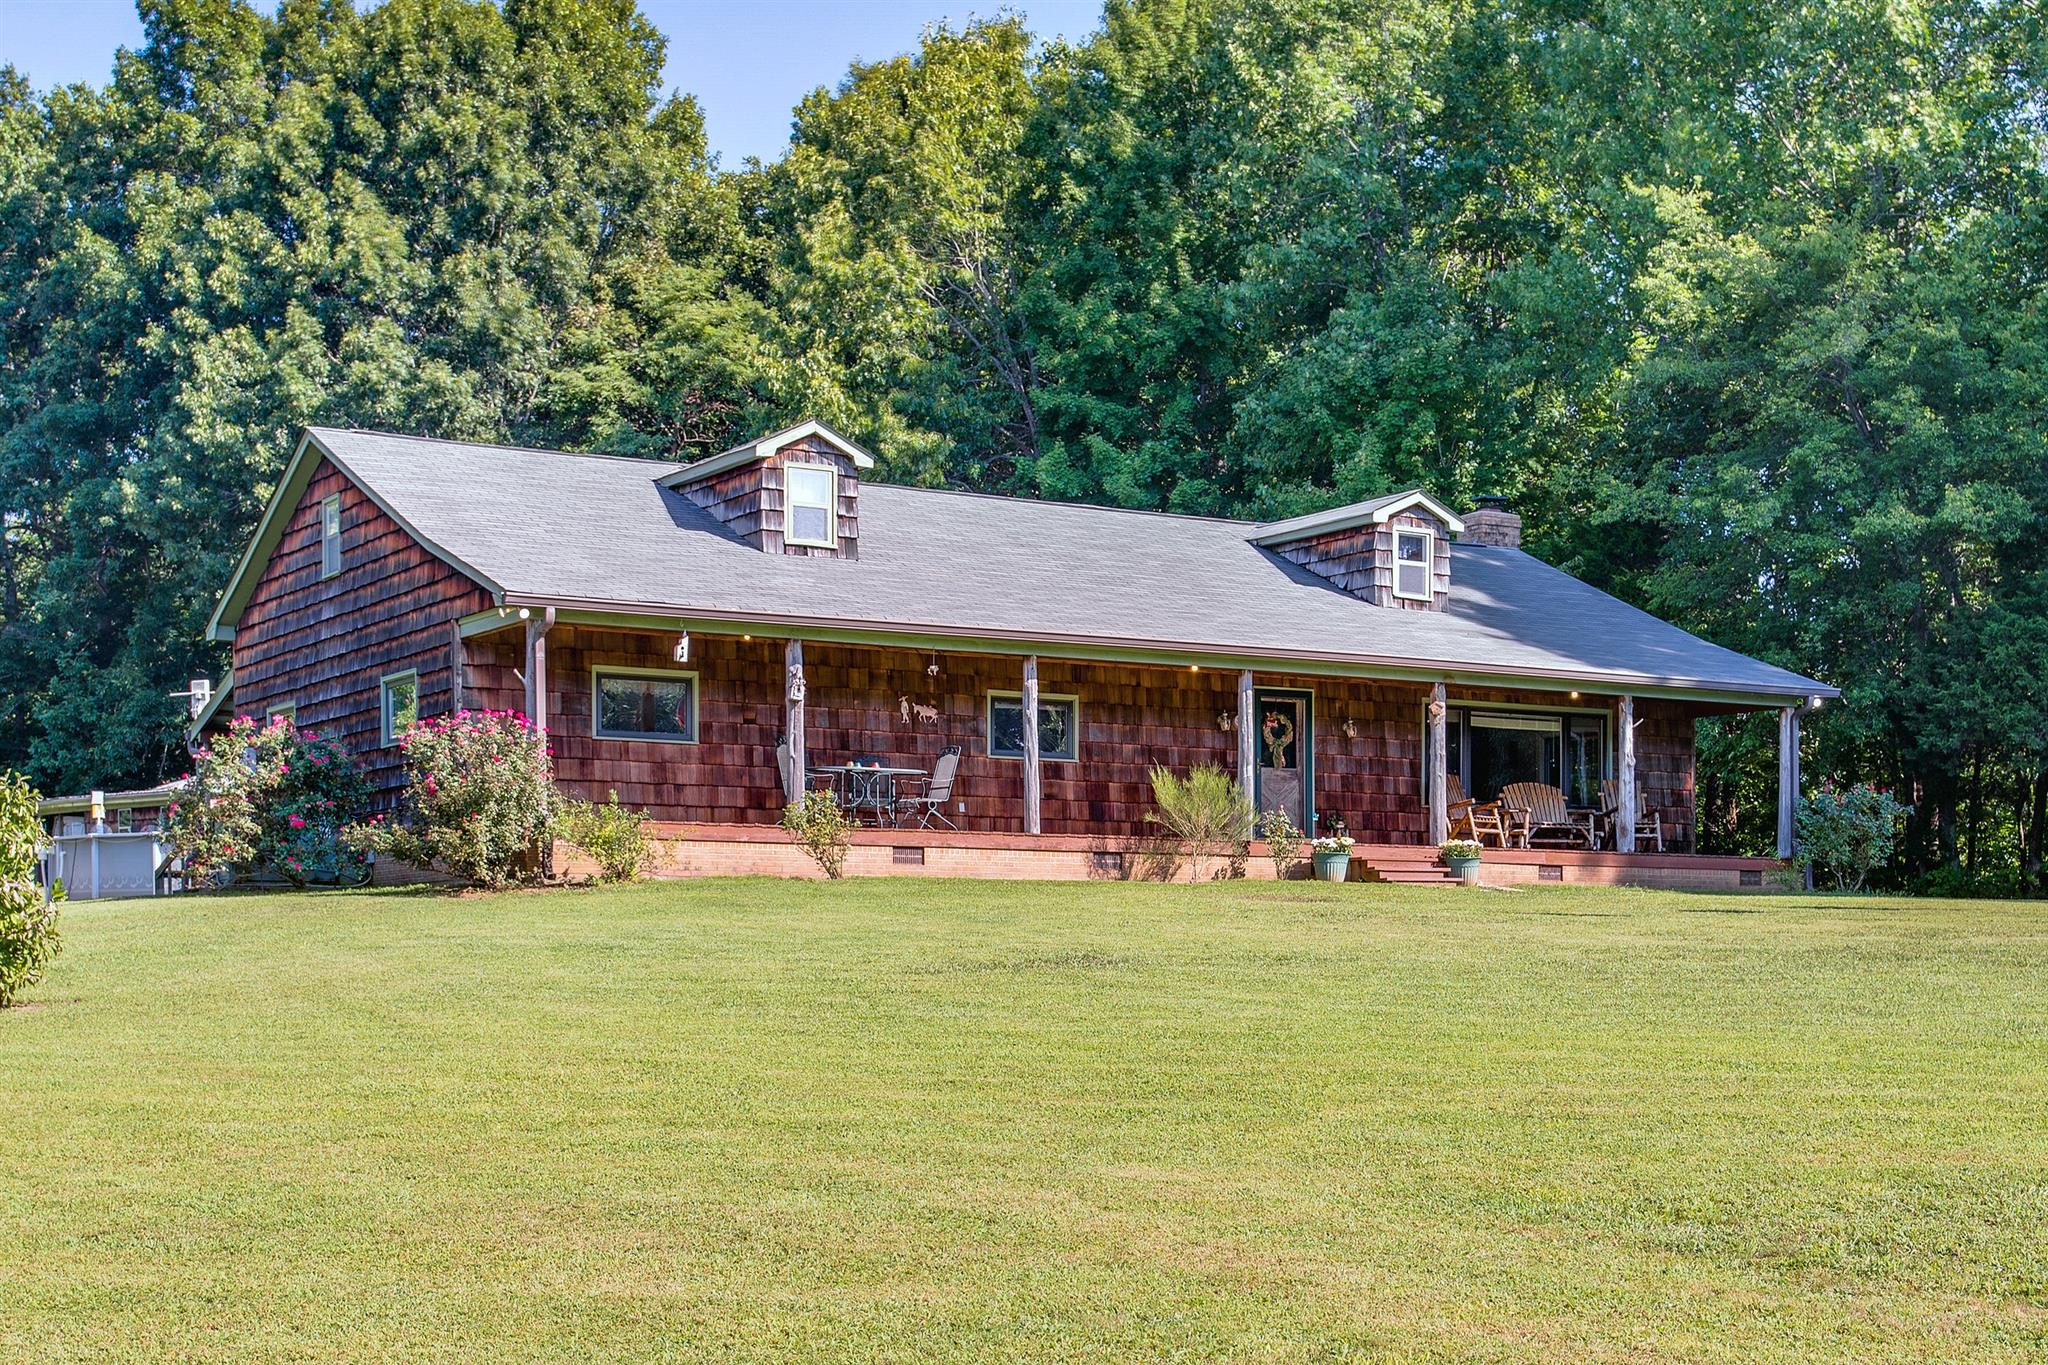 2657 Winding Way Rd, Culleoka, TN 38451